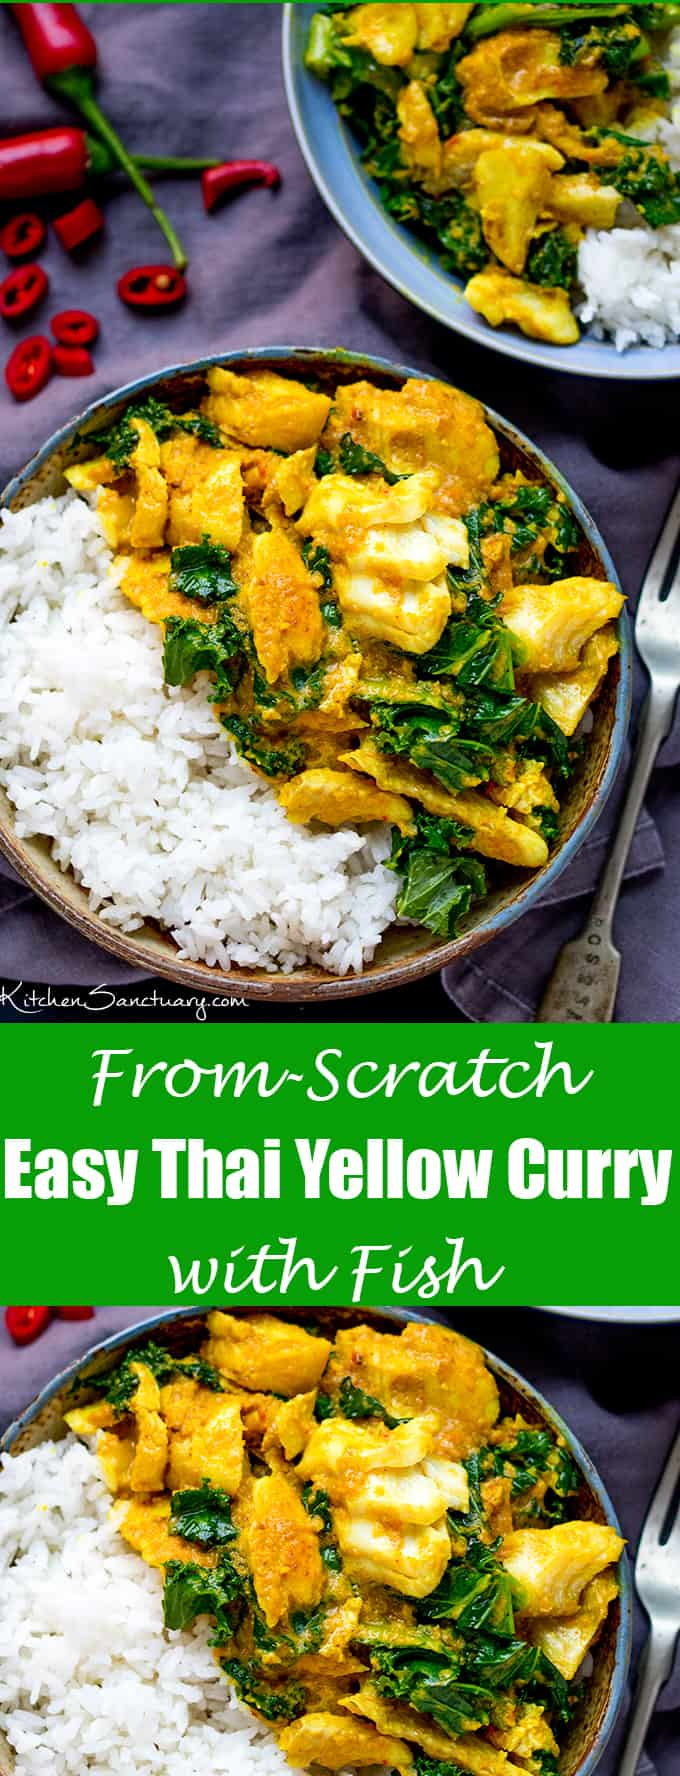 No bland flavours over here! This Easy From-Scratch Thai Yellow Curry with Fish is simple, delicious and speedy too!